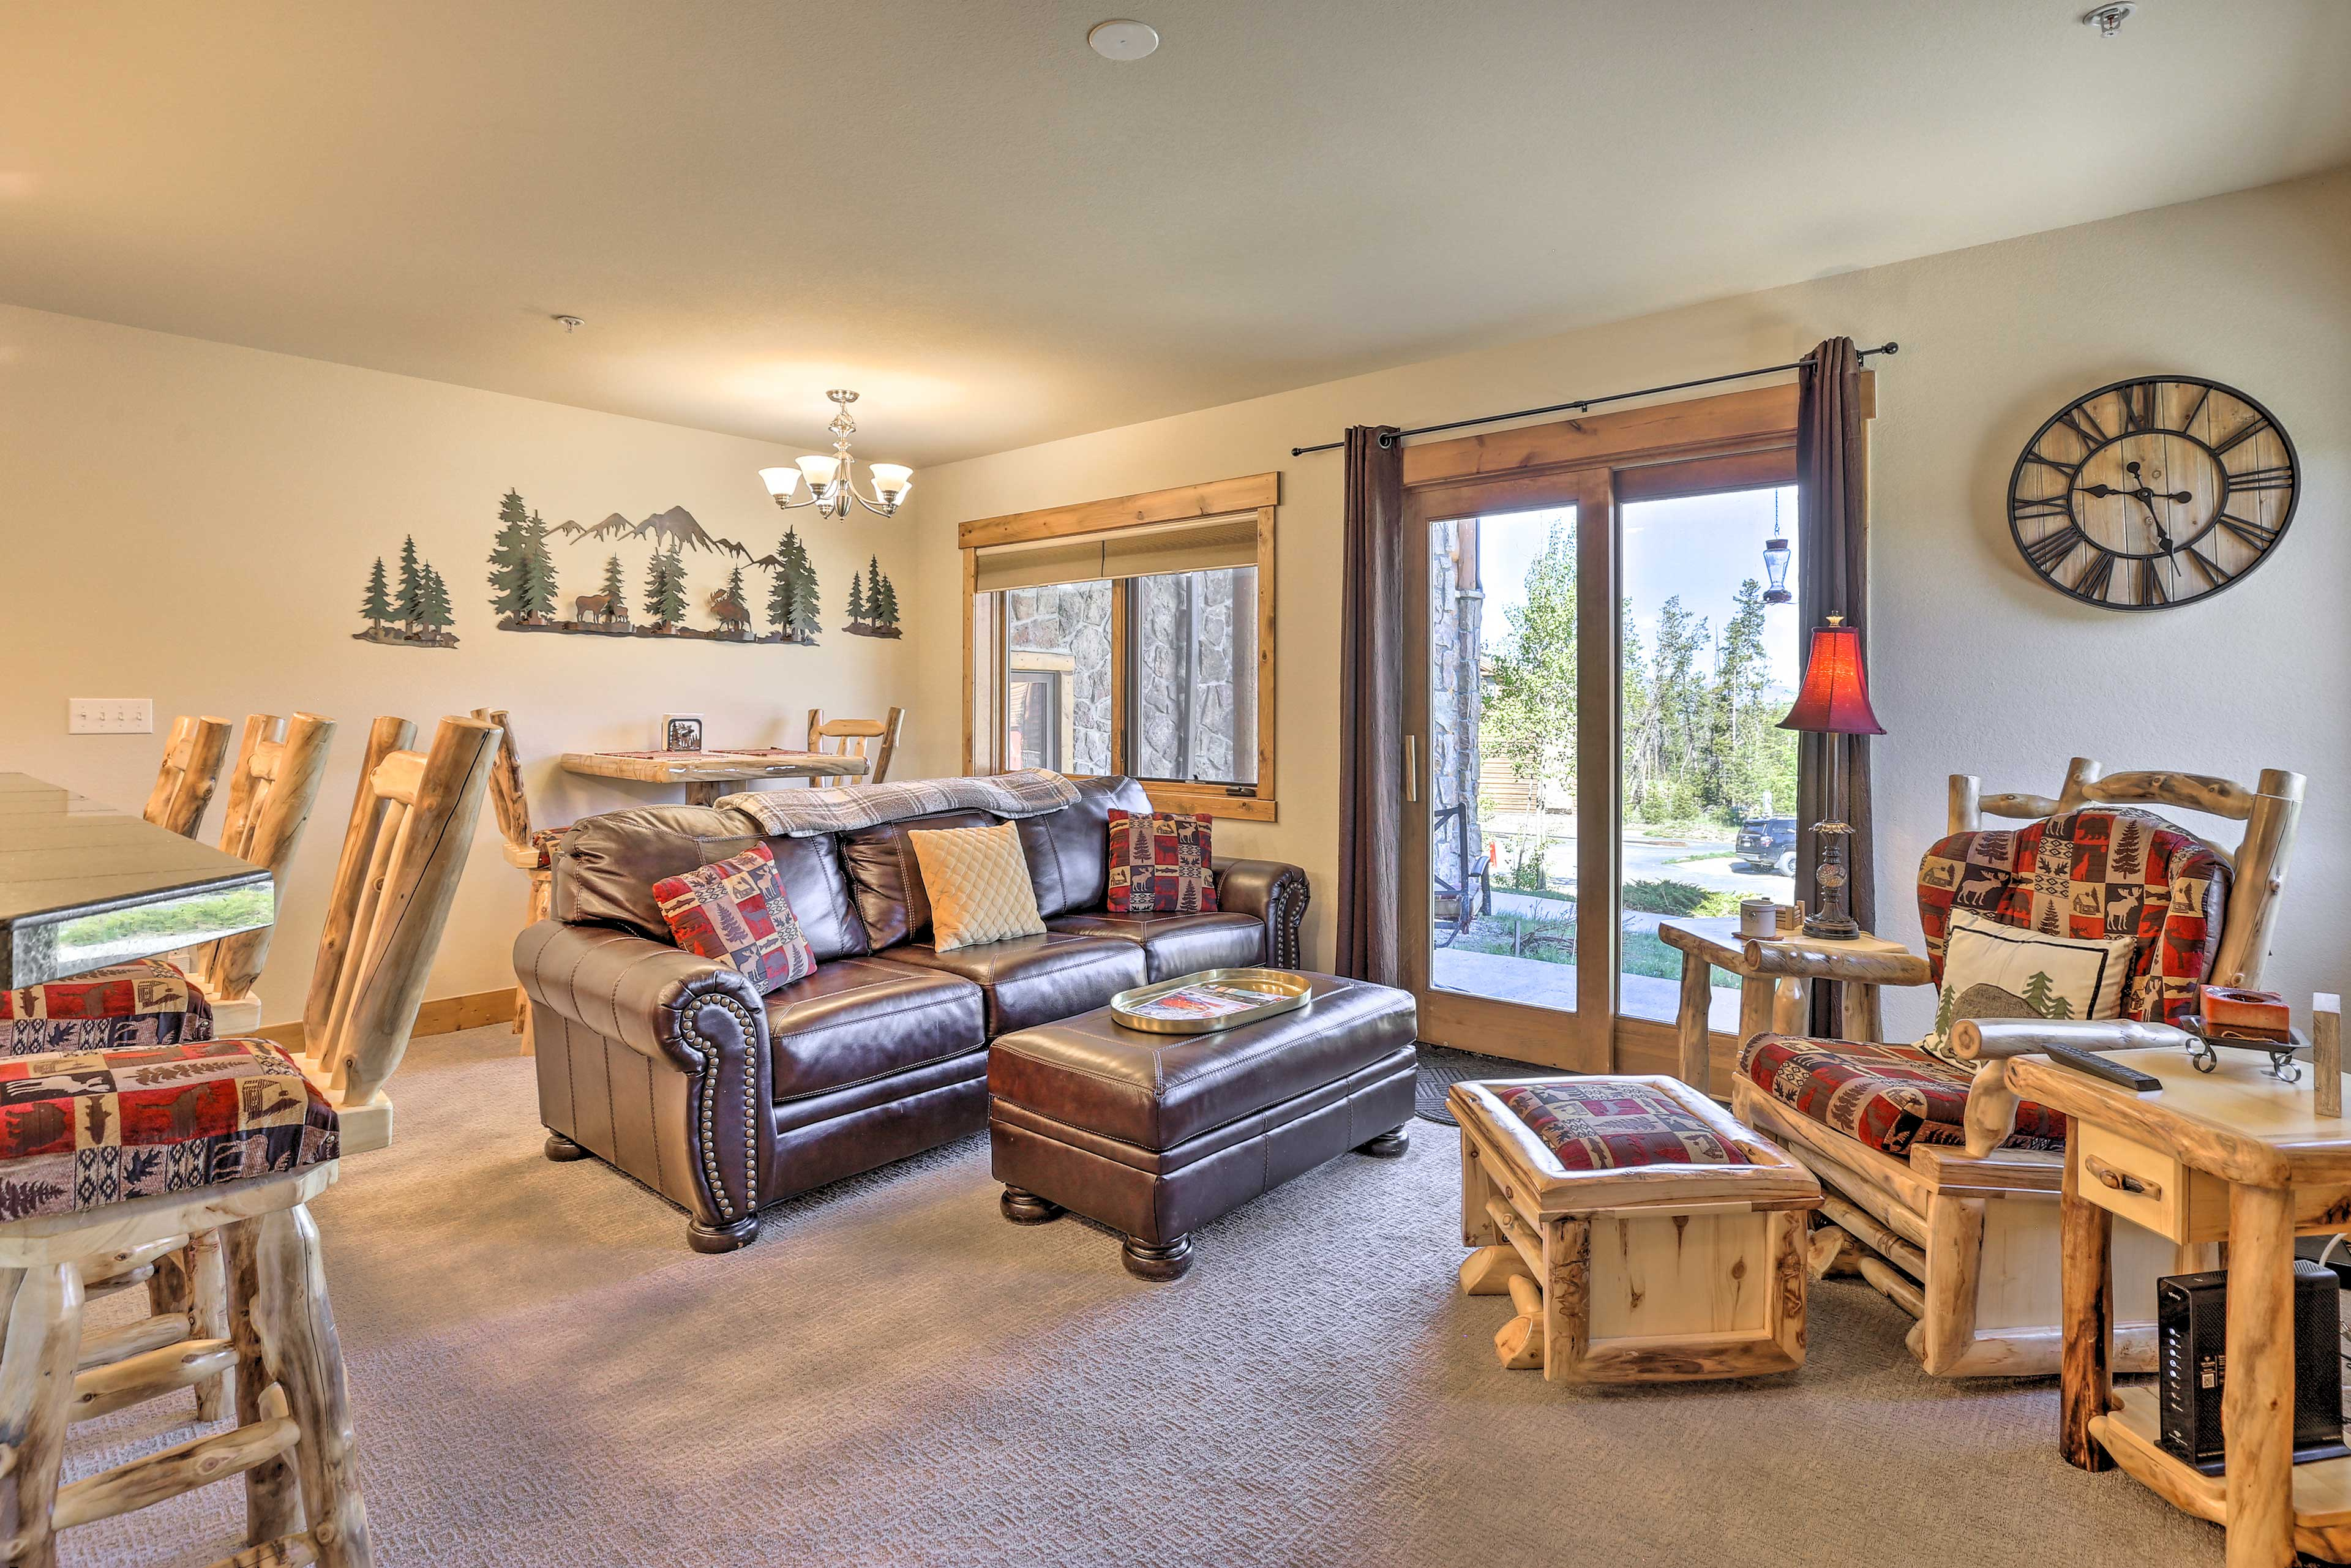 Traditional mountain cabin decor and furnishings create a cozy space.